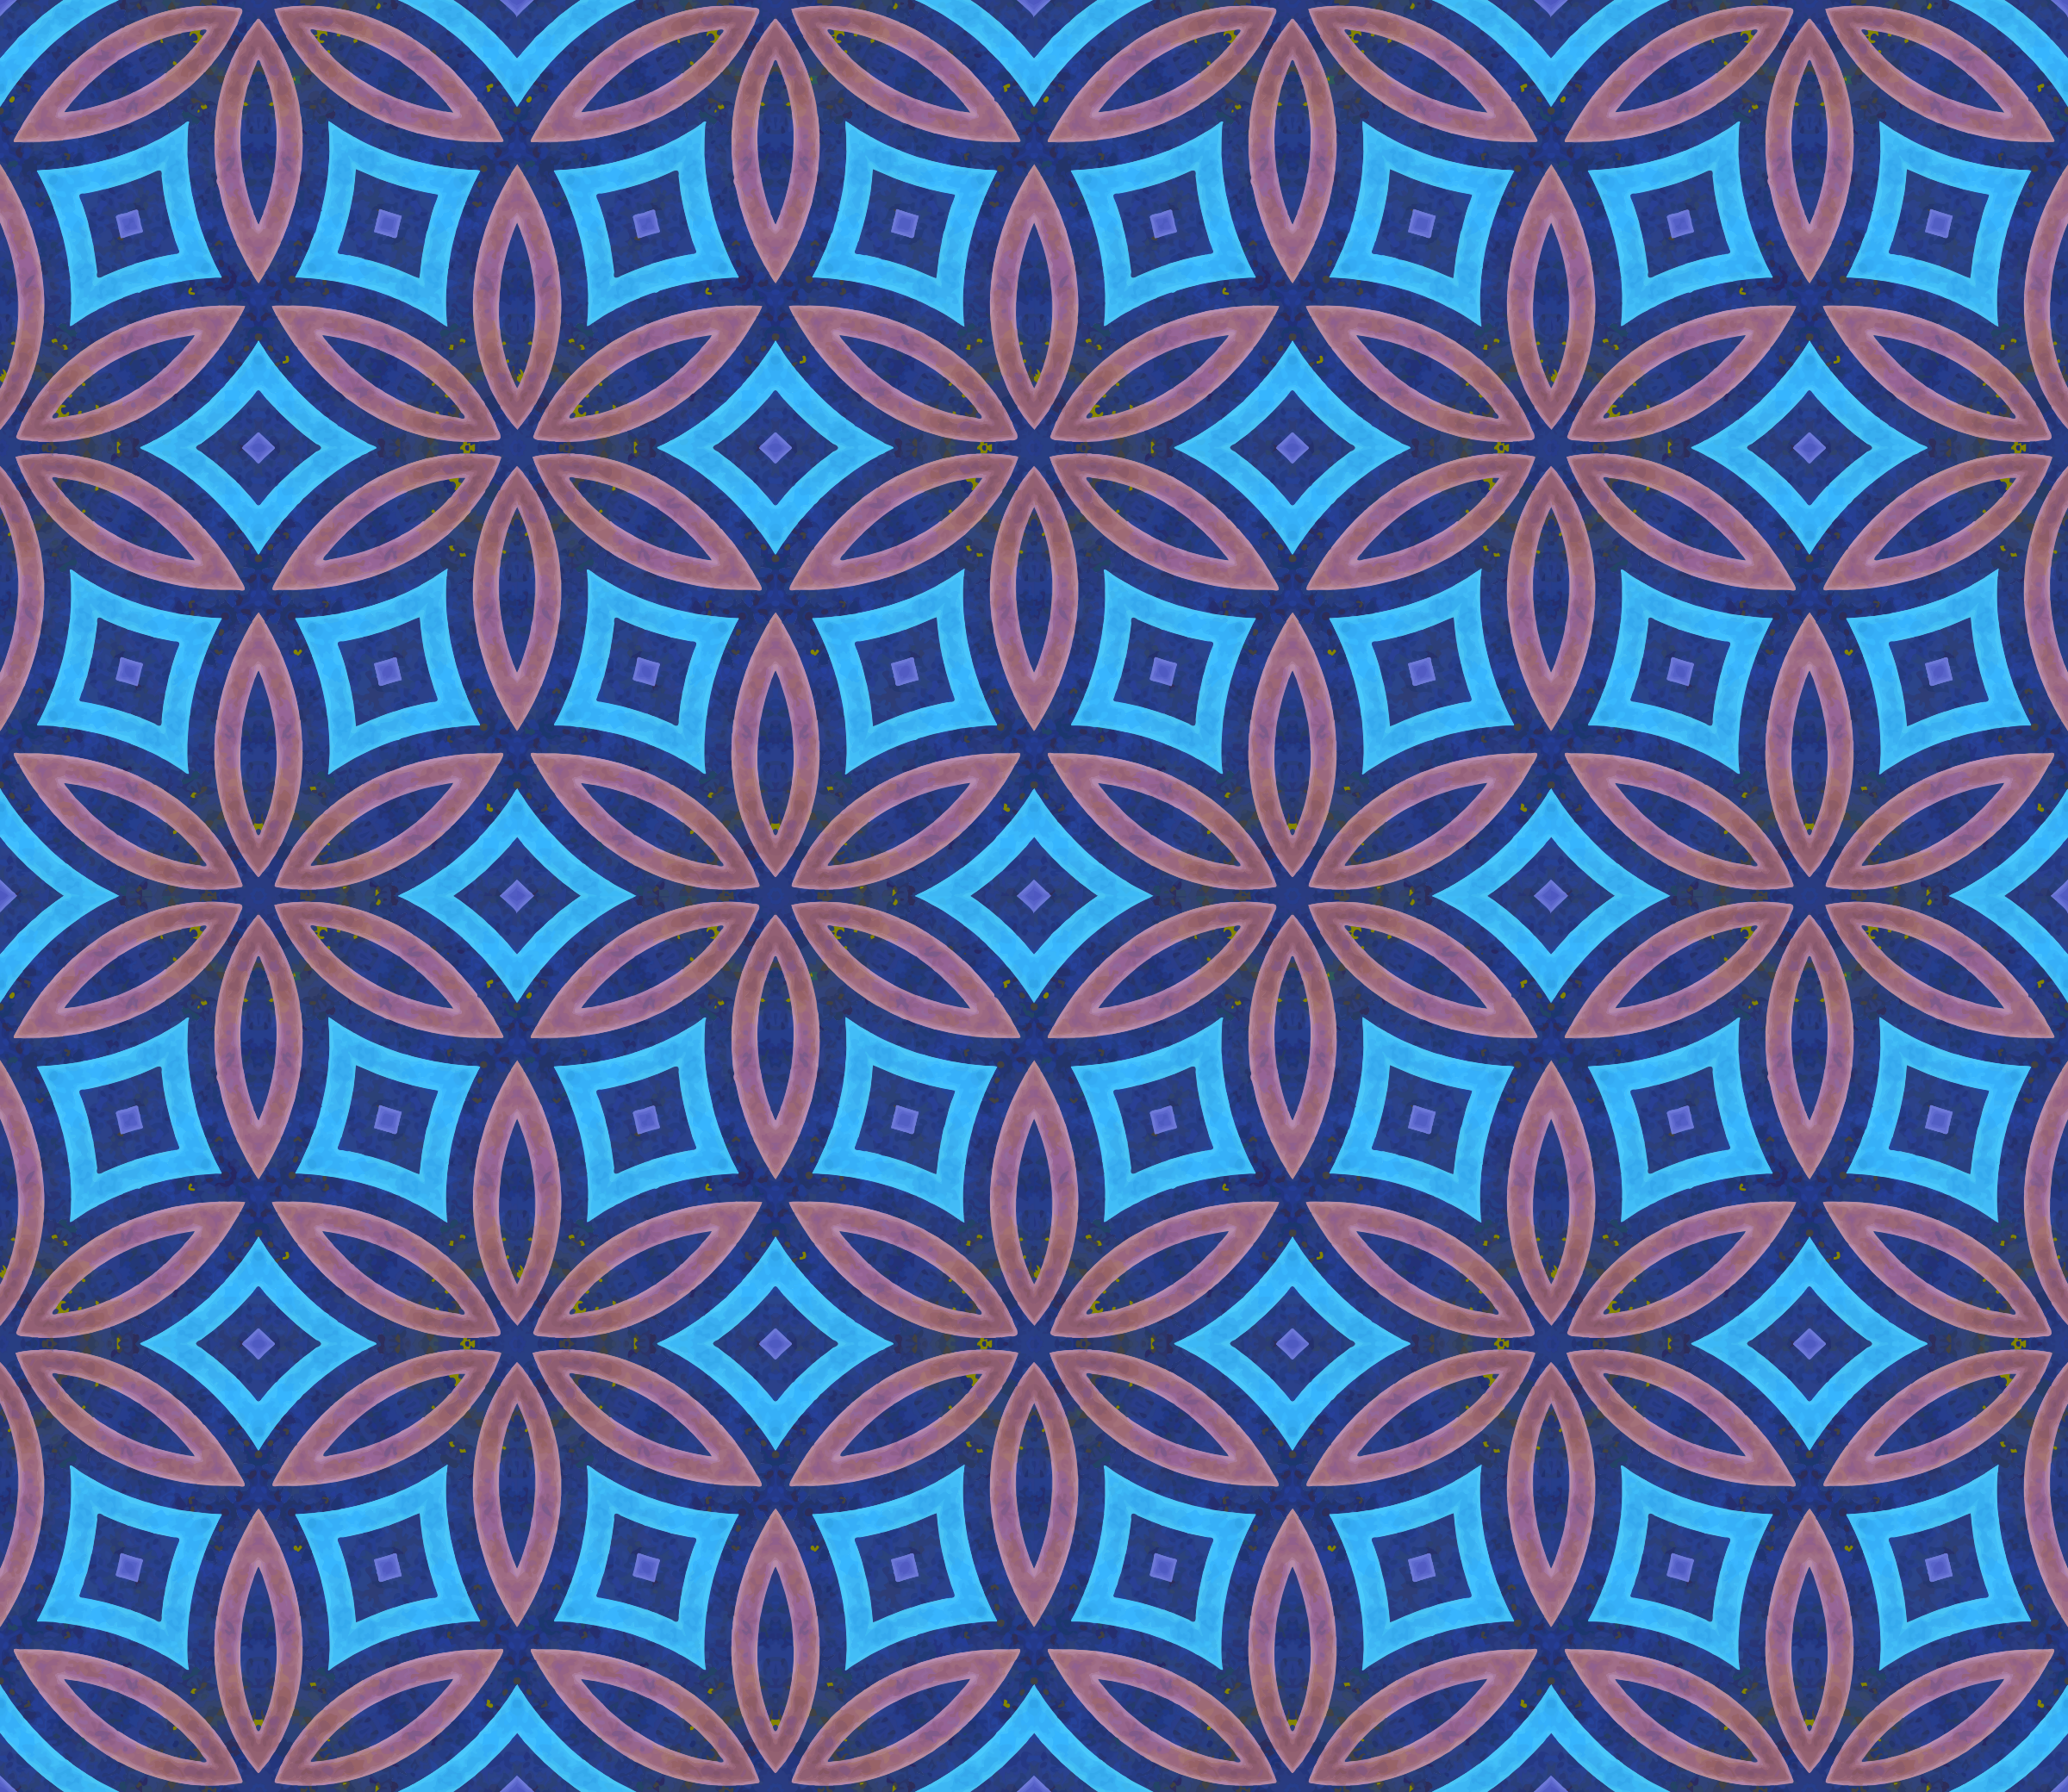 Background pattern 316 (colour 5) by Firkin